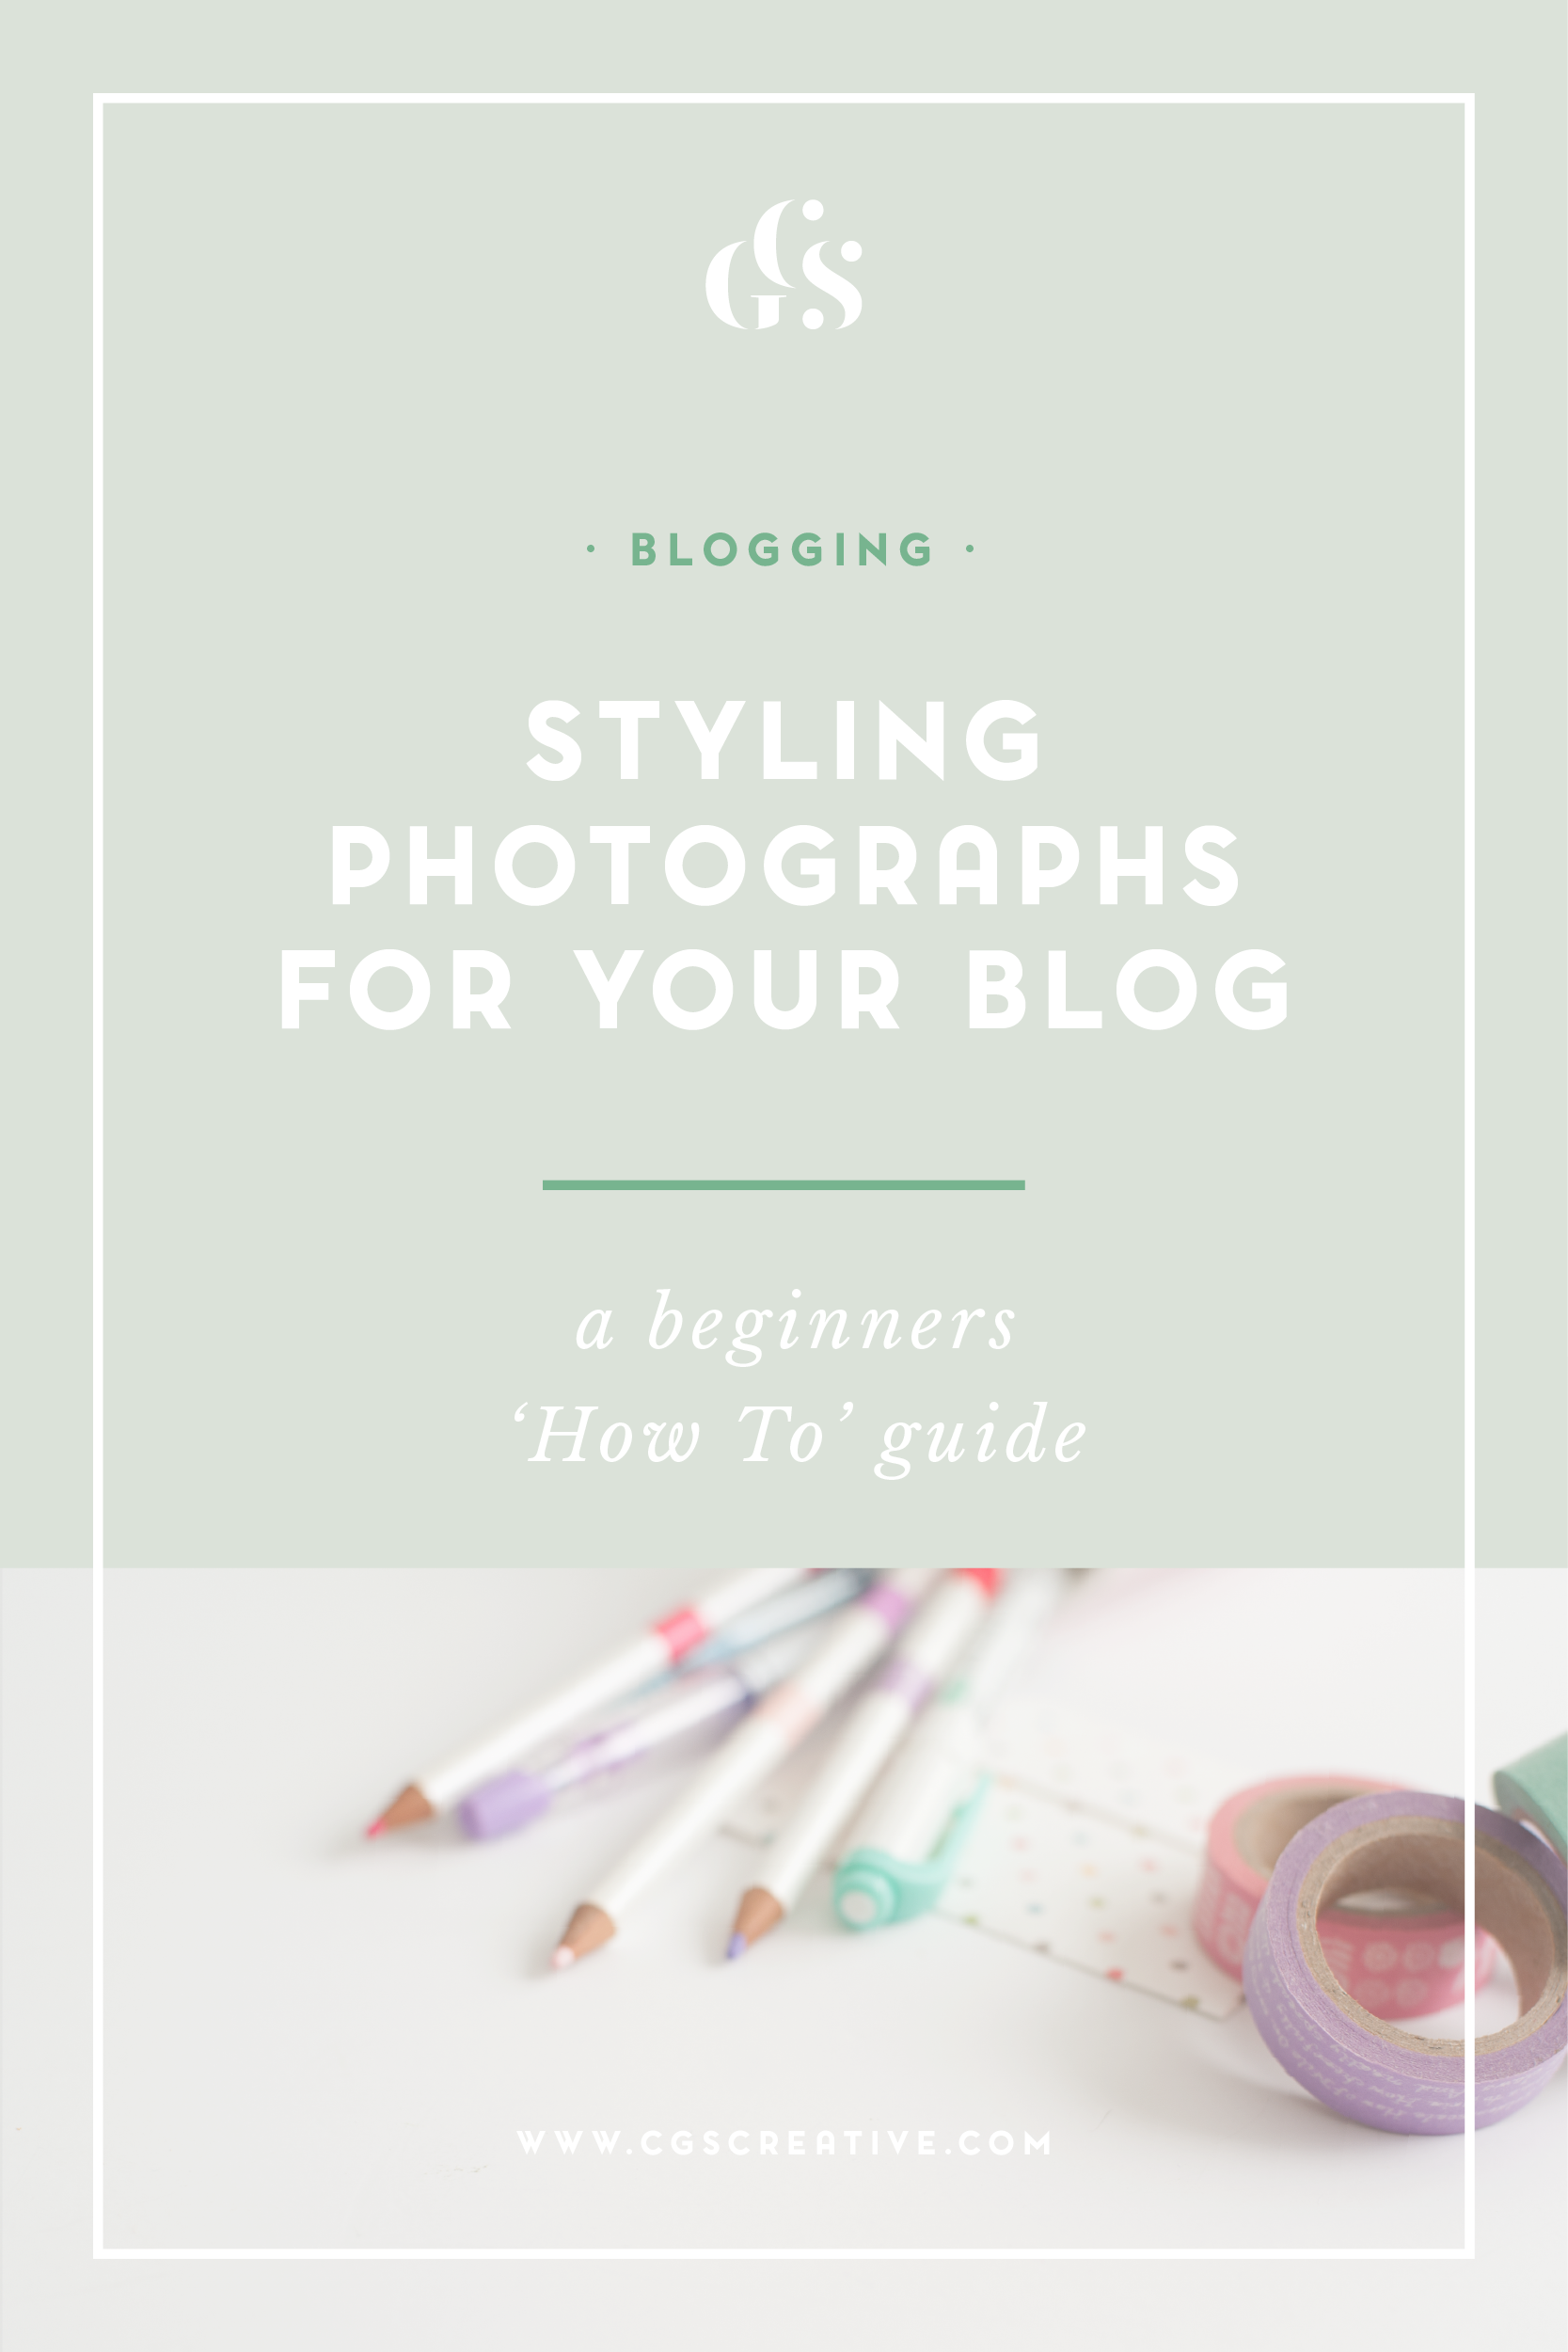 How to style your own photographs for your blog